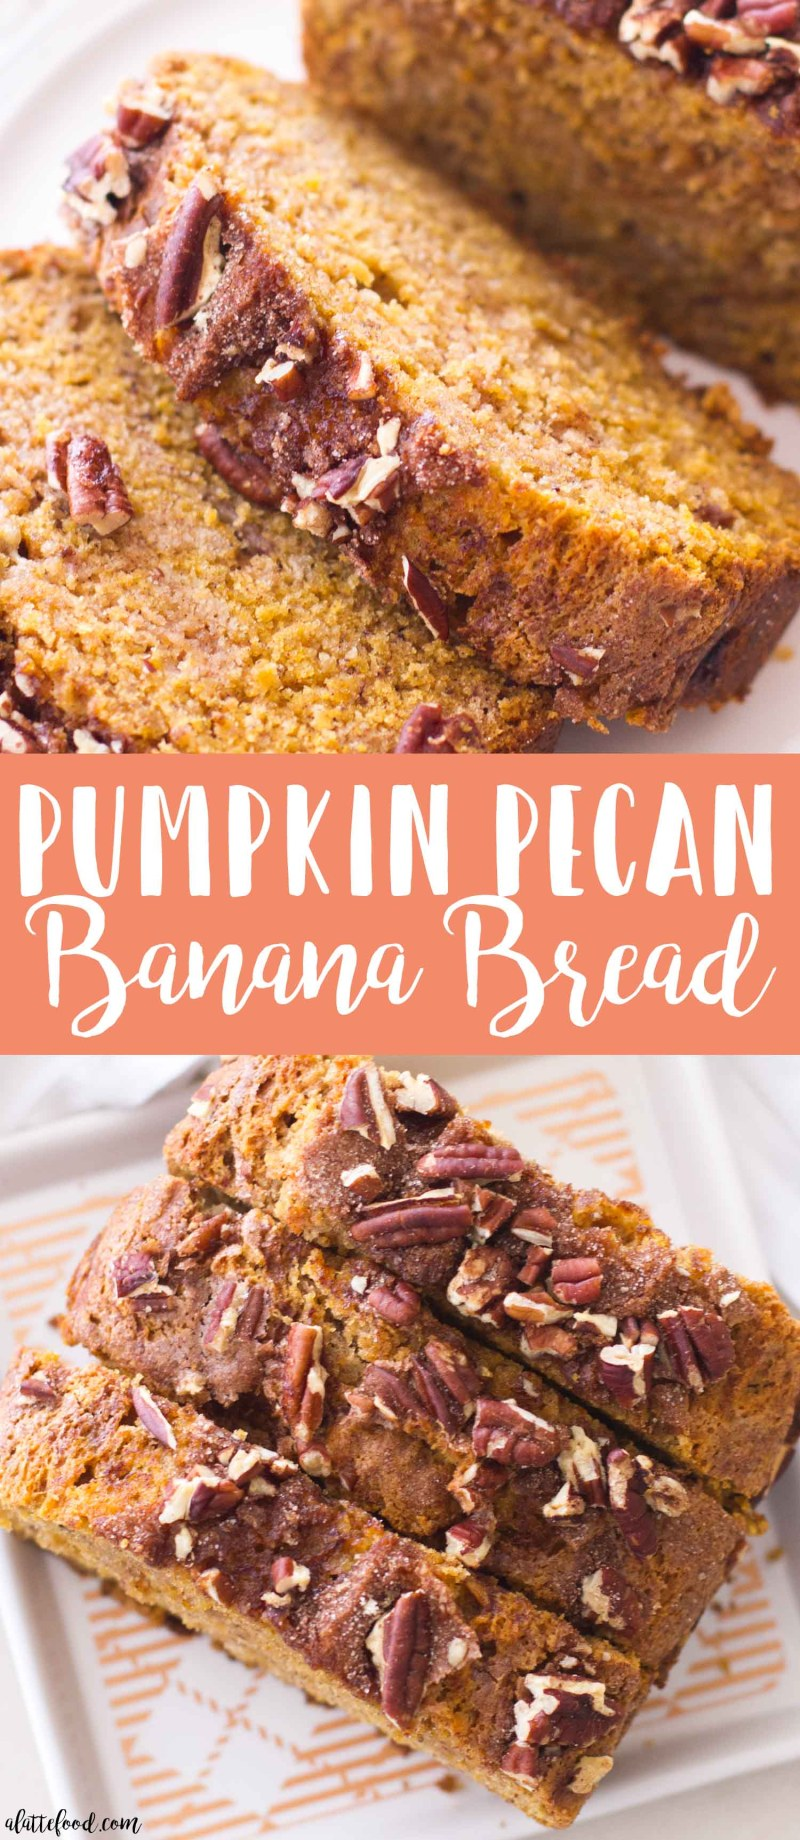 This easy Pumpkin Pecan Banana Bread recipe is one of my favorite fall dessert recipes! A sweet homemade banana bread is crossed with moist pumpkin bread (and topped with cinnamon sugar and crushed pecans) to make a perfectly spiced pumpkin banana bread!easy pumpkin bread, homemade pumpkin banana bread, best banana pumpkin bread